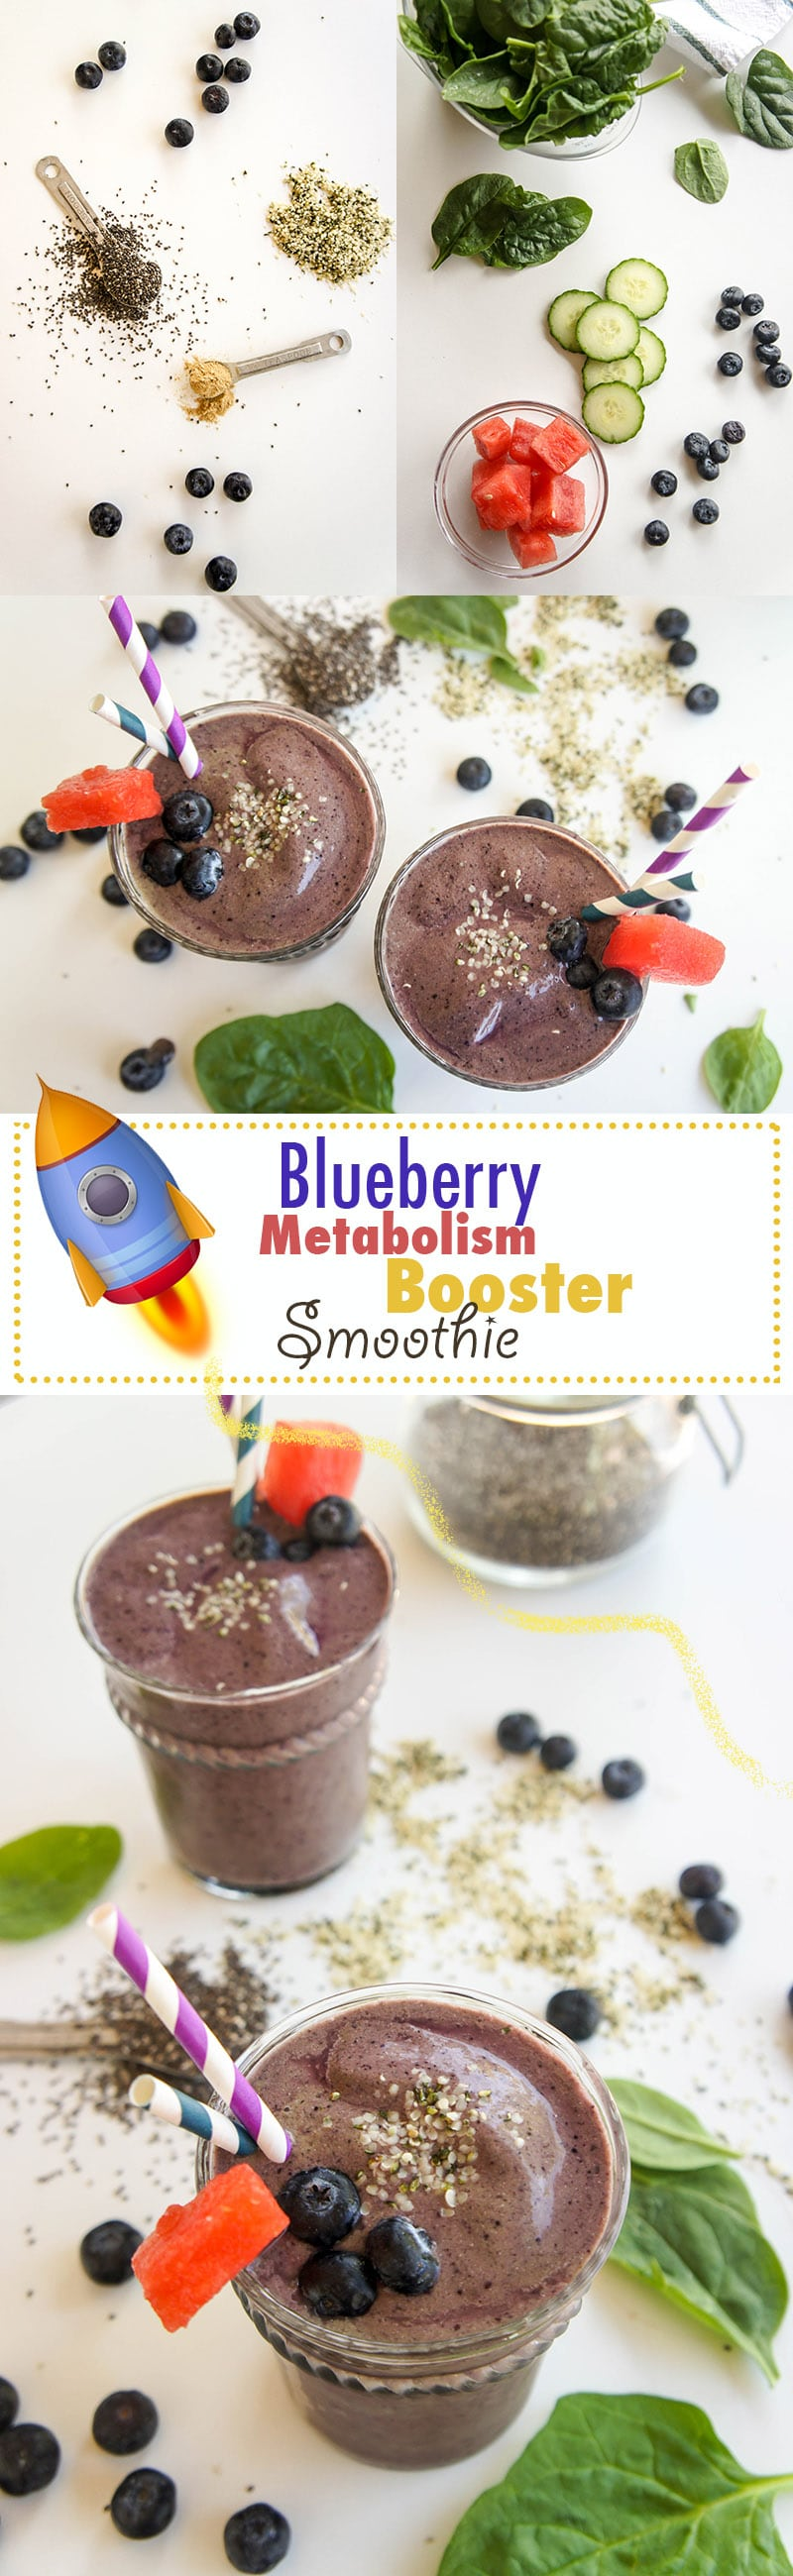 Blueberry Metabolism Boosting Smoothie / This blend of fruit, vegetables, and seeds is sure to rev up a sleepy metabolism!